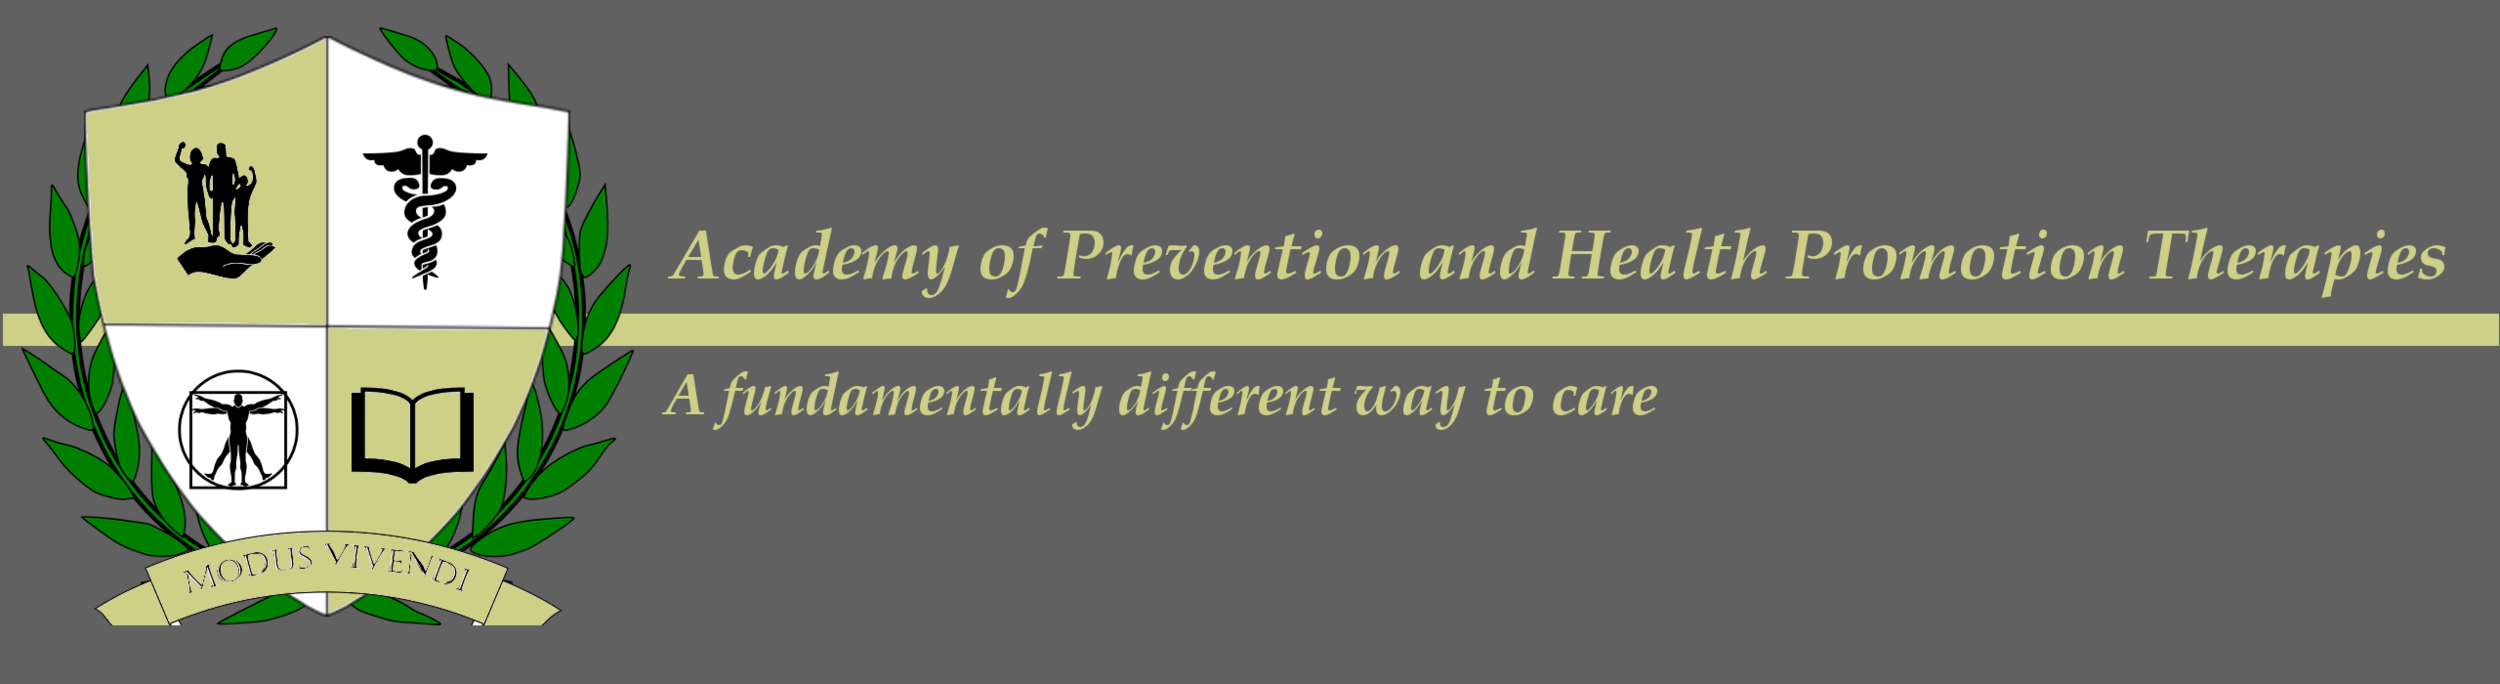 APPLIED PREVENTION & HEALTH PROMOTION THERAPIES